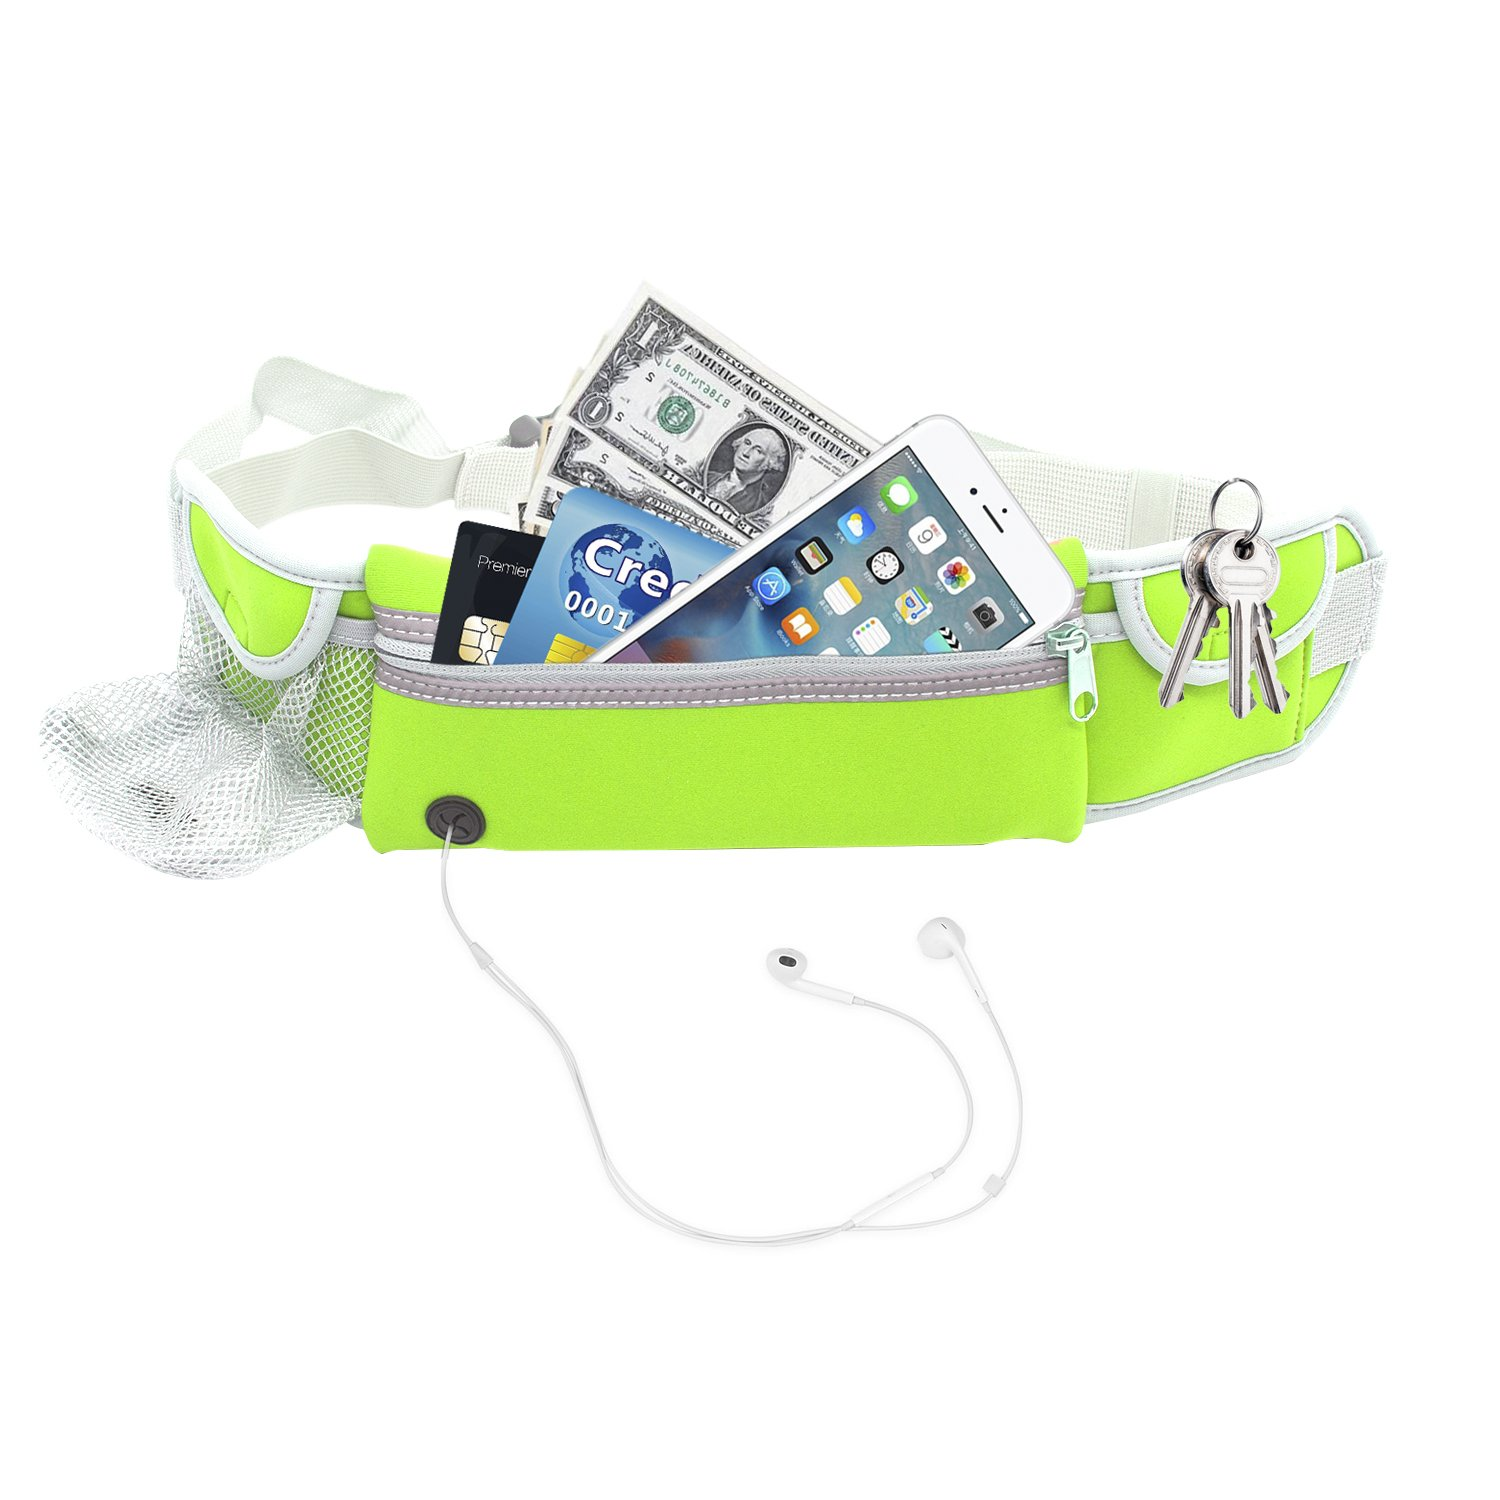 Running Belt Mens Womens Ladies Fitness Belt Holder for Iphone 7/7 Plus 6/6s/6 Plus All Mobile Phones Size Below 5. 5 inch Acessories Fits for Traveling Hiking Walking Green